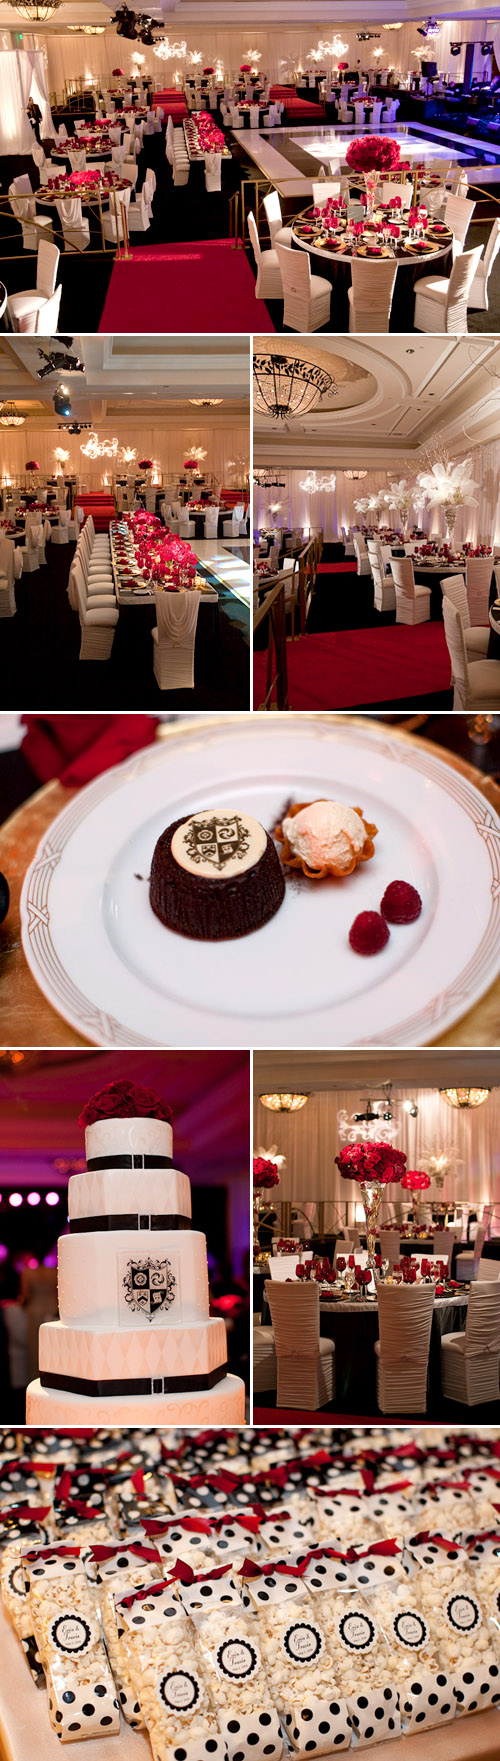 wedding design by Details Details Wedding and Event Planning, images by Victor Sizemore